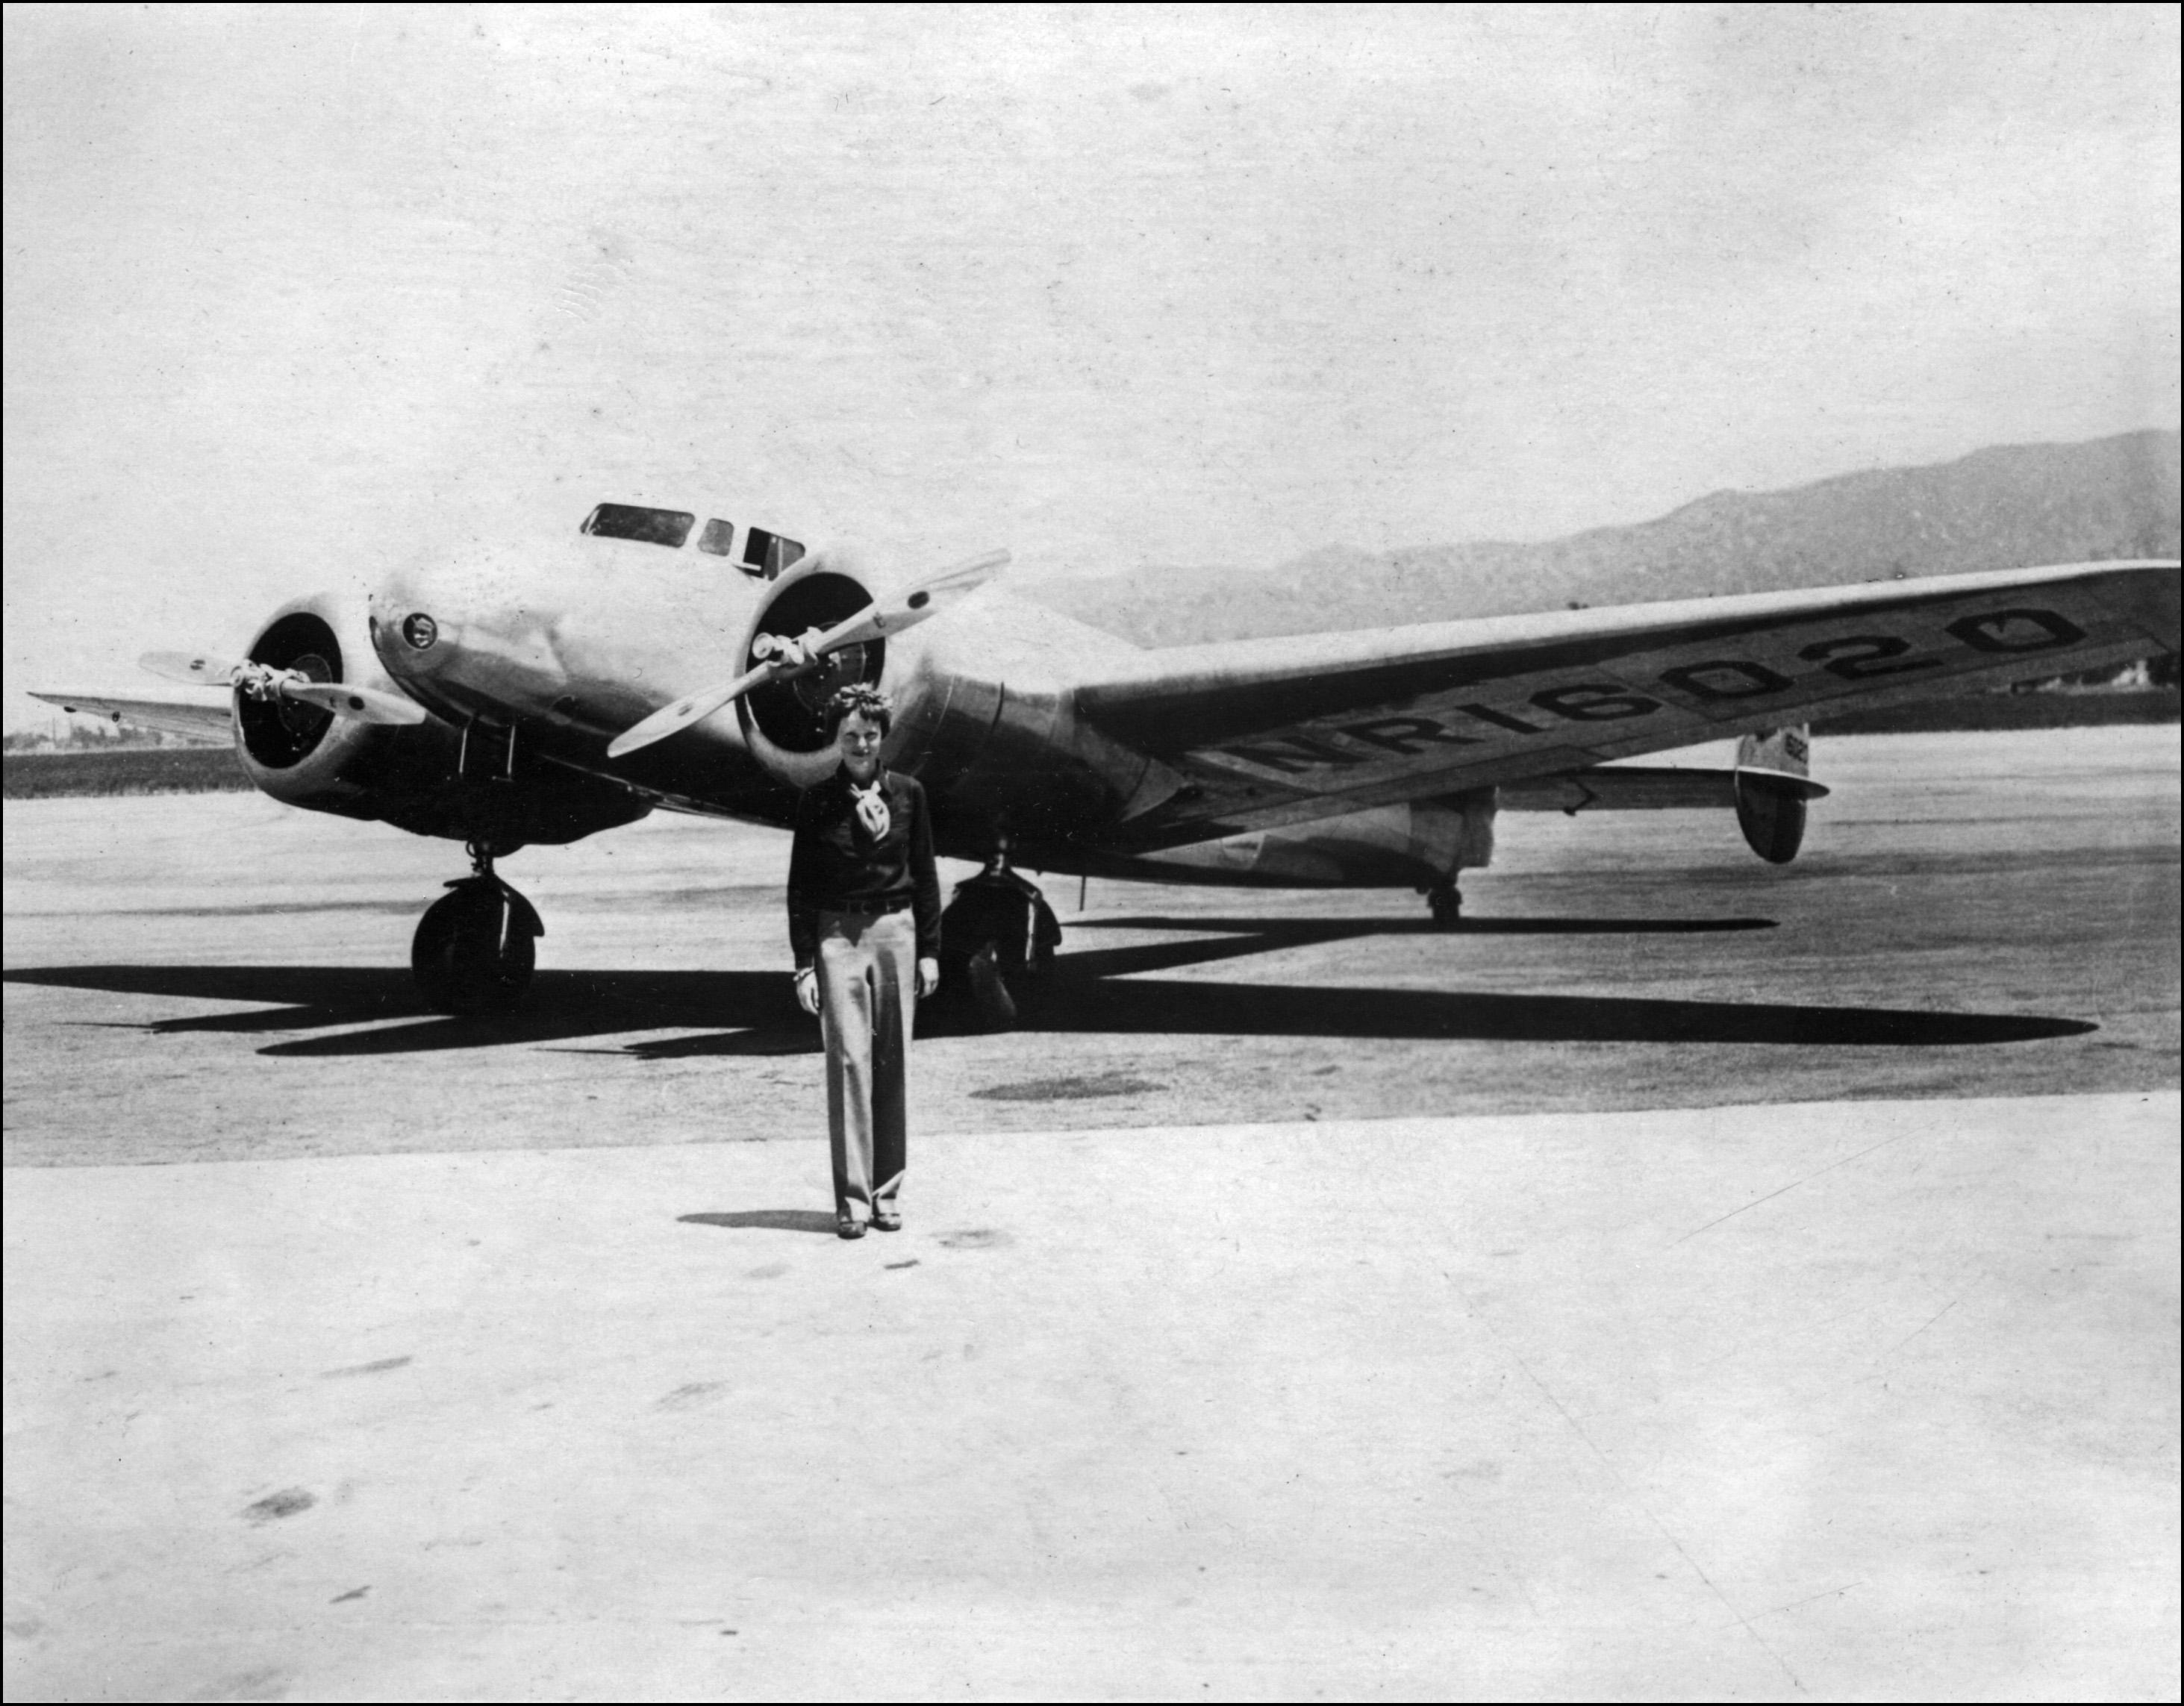 Search for Earhart plane on remote Marshalls atoll